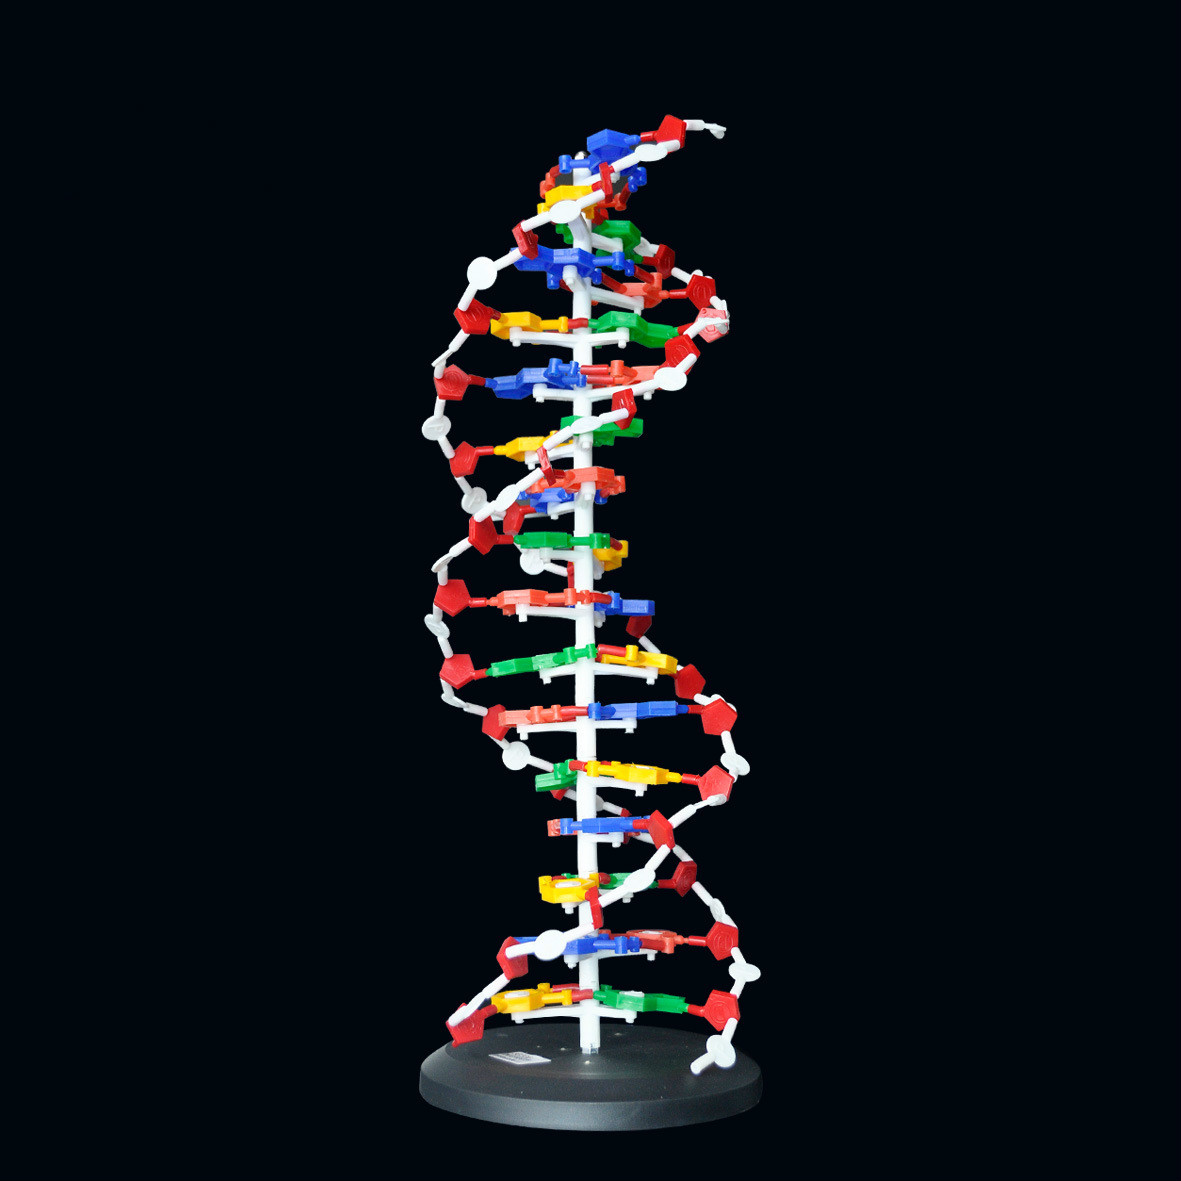 60cm High Dna Double Helix Structure Model Base Pair